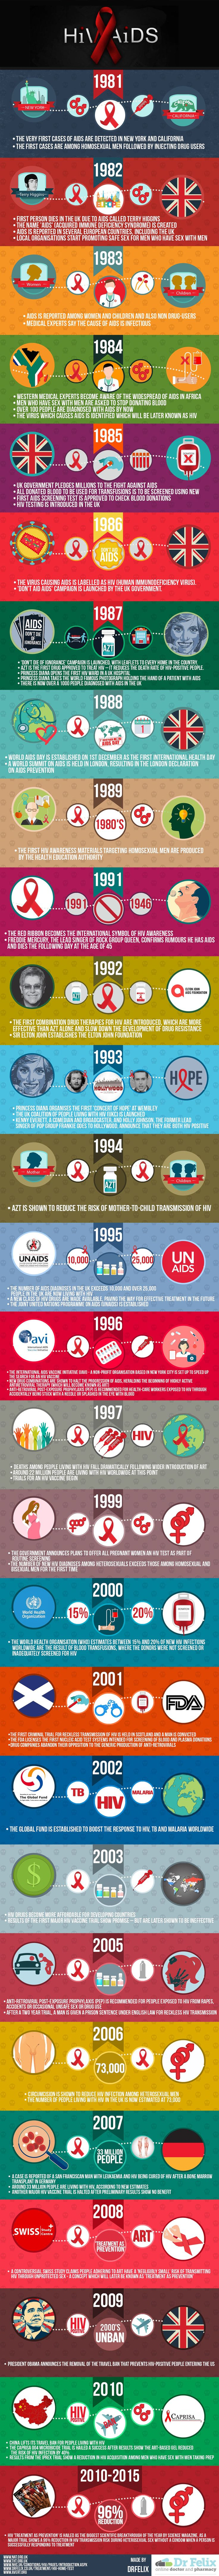 Discovery and Treatment of Aids HIV Timeline Infographic #disease #virus #cancer